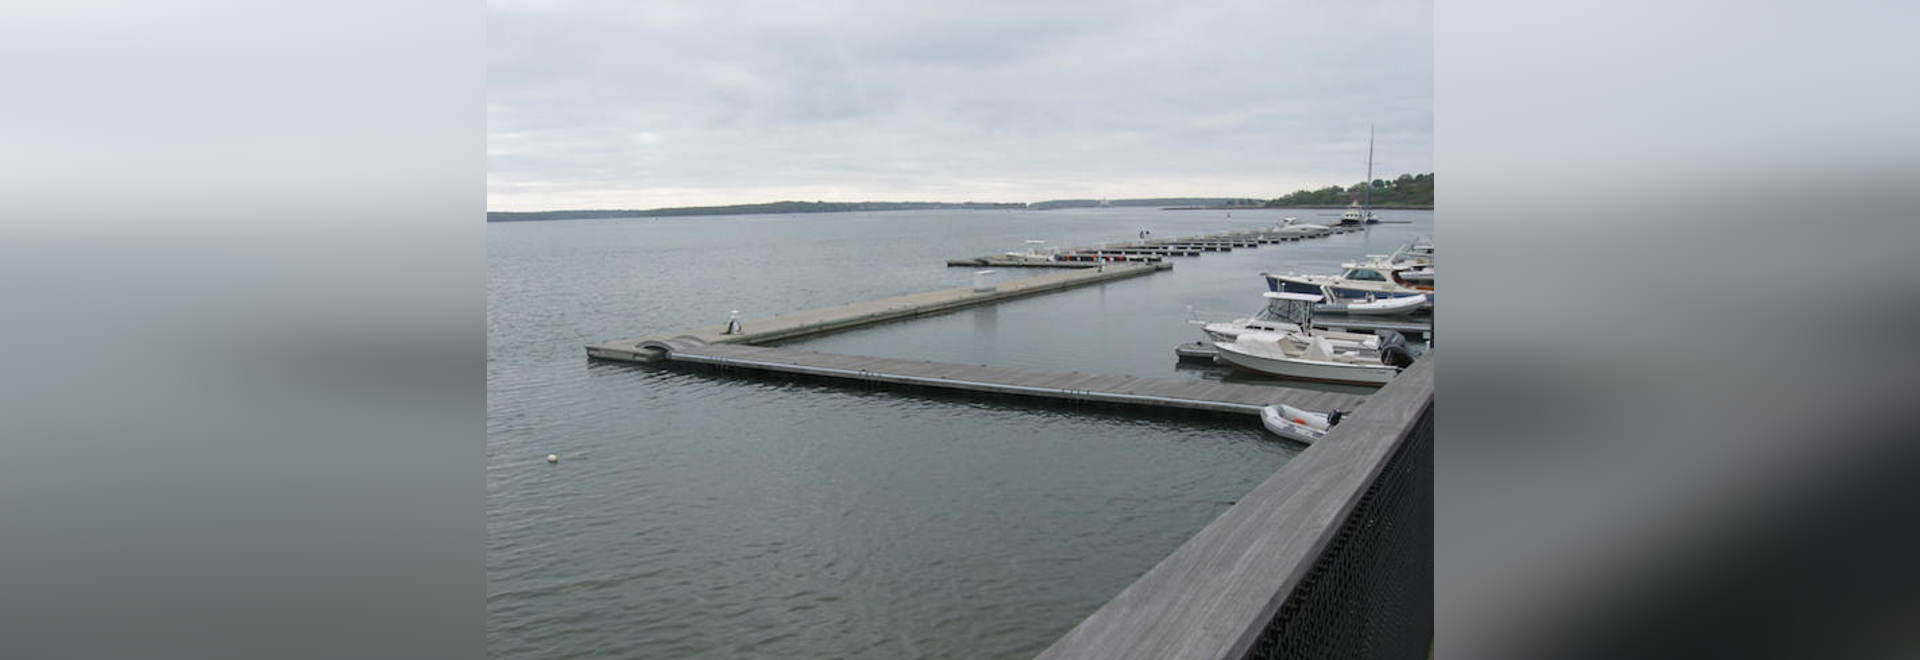 Maine Yacht Center's floating concrete breakwater protects against northeast storms that destroyed a previous structure.